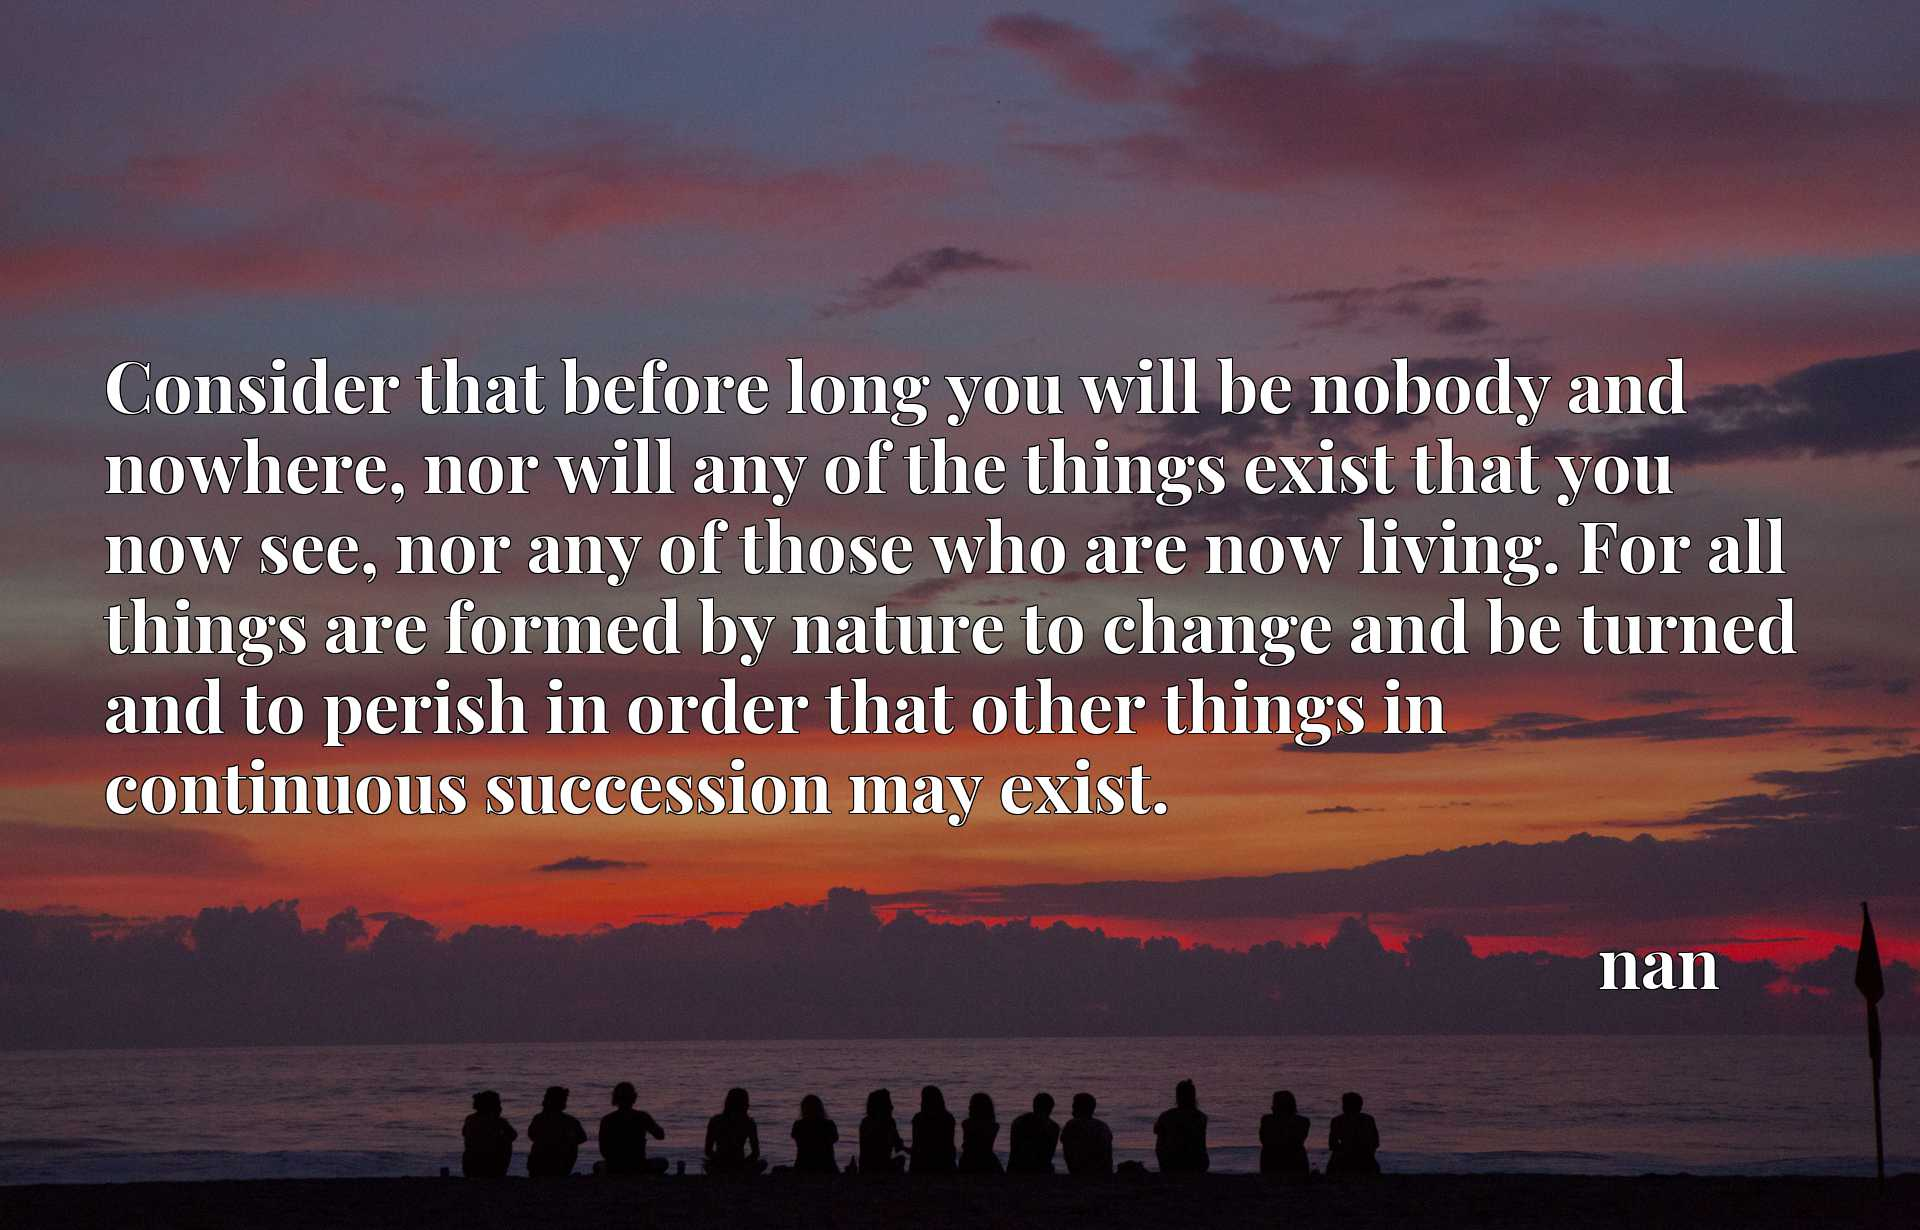 Consider that before long you will be nobody and nowhere, nor will any of the things exist that you now see, nor any of those who are now living. For all things are formed by nature to change and be turned and to perish in order that other things in continuous succession may exist.